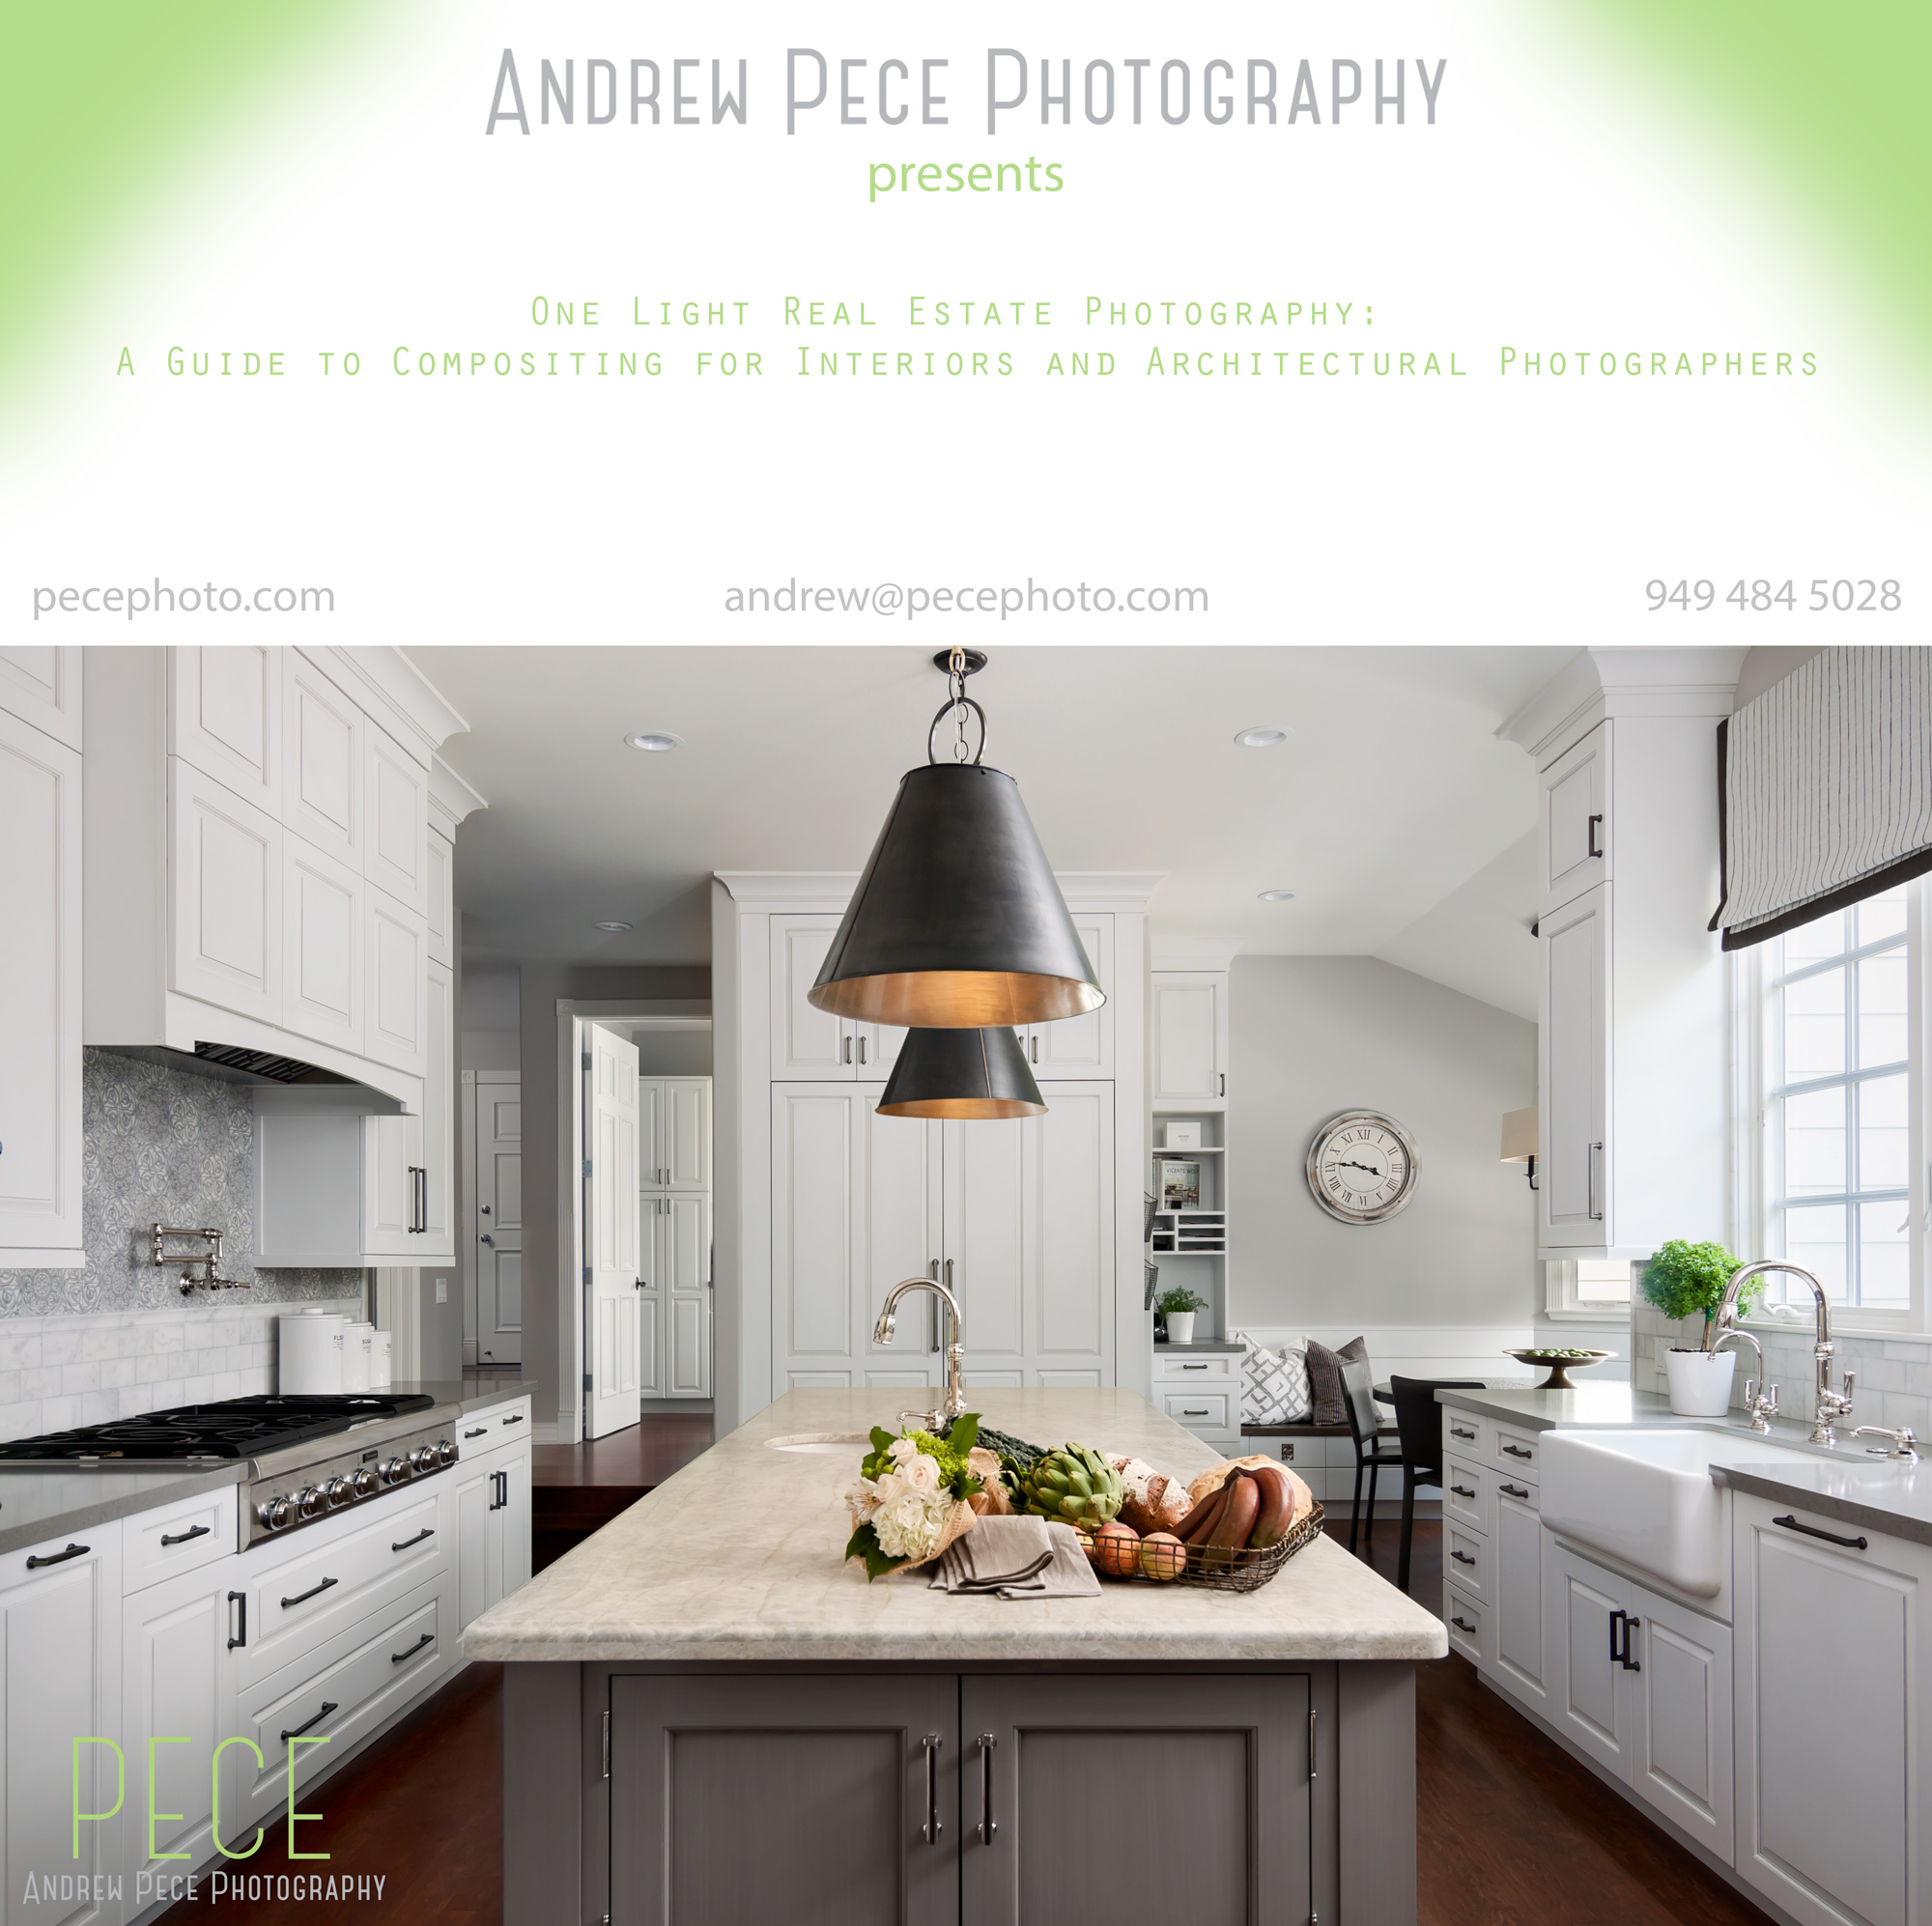 The course culminates with a 1.5 hour video edit of a modern kitchen (final image pictured above).